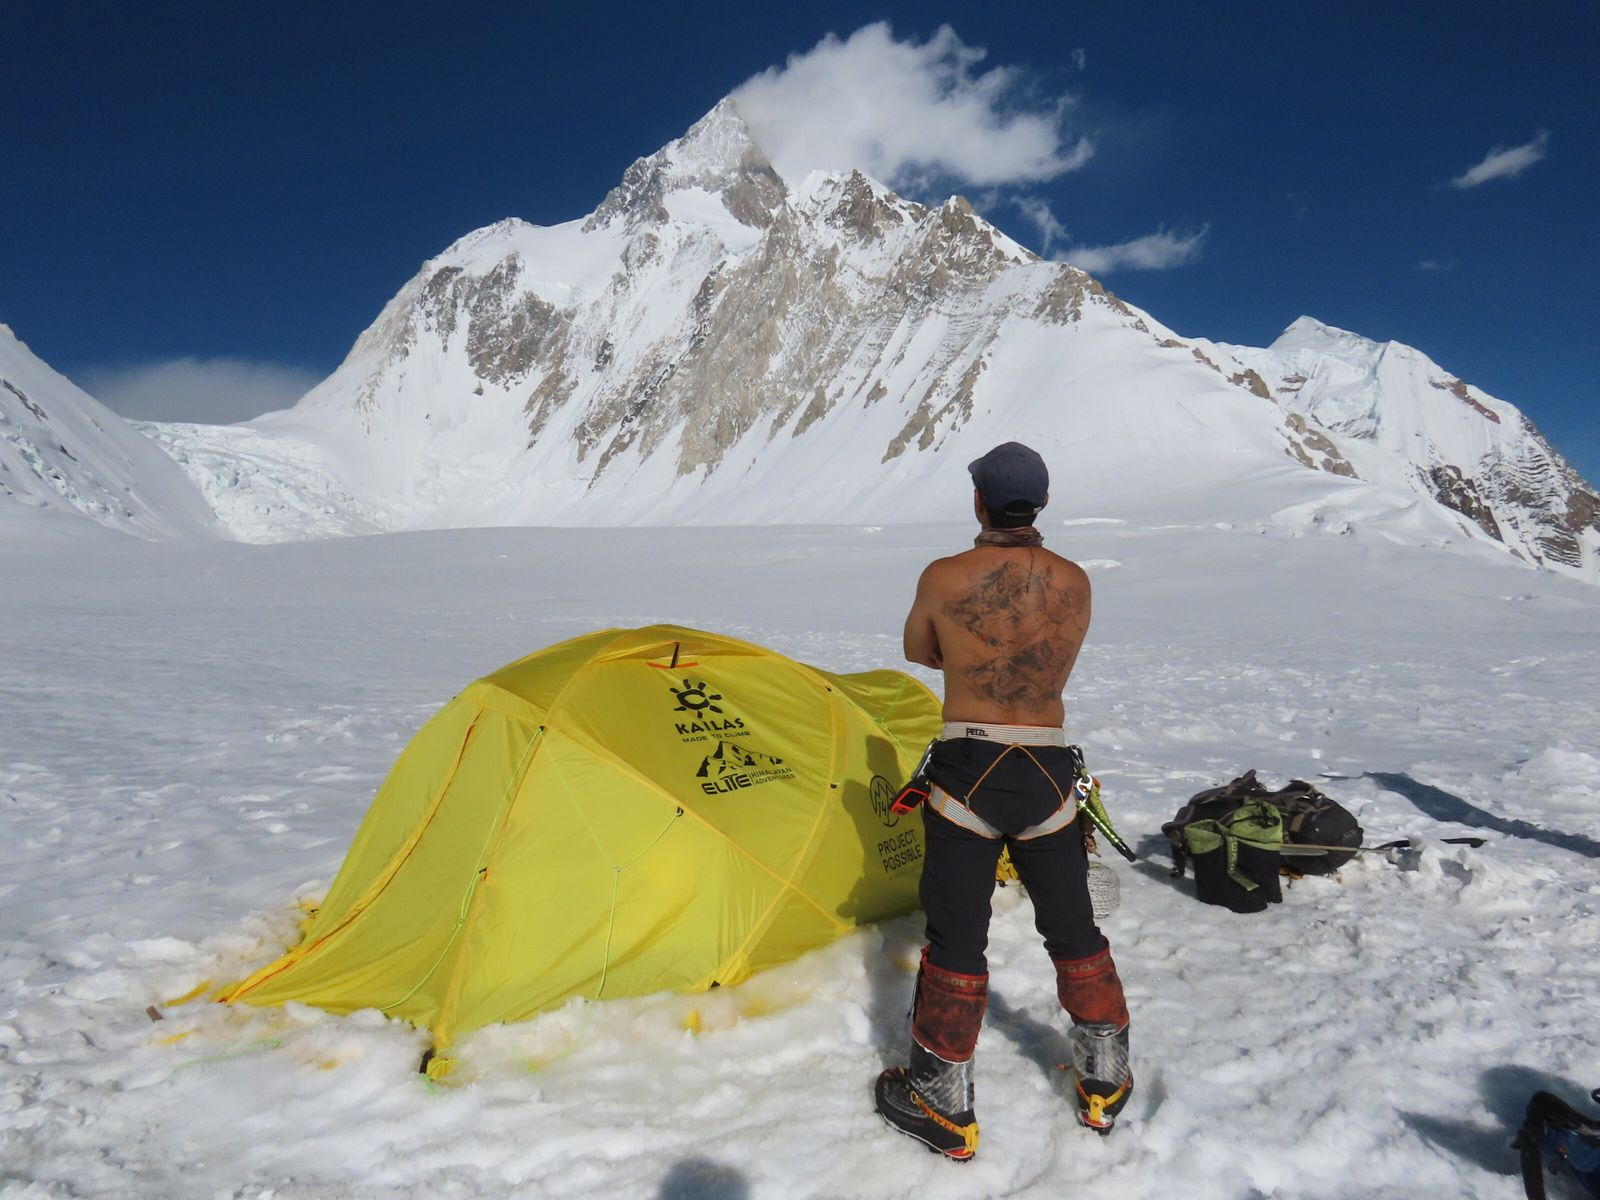 Displaying his DNA-infused tattoo, Nims Purja surveys Kashmir's Gasherbrum massif from his basecamp.